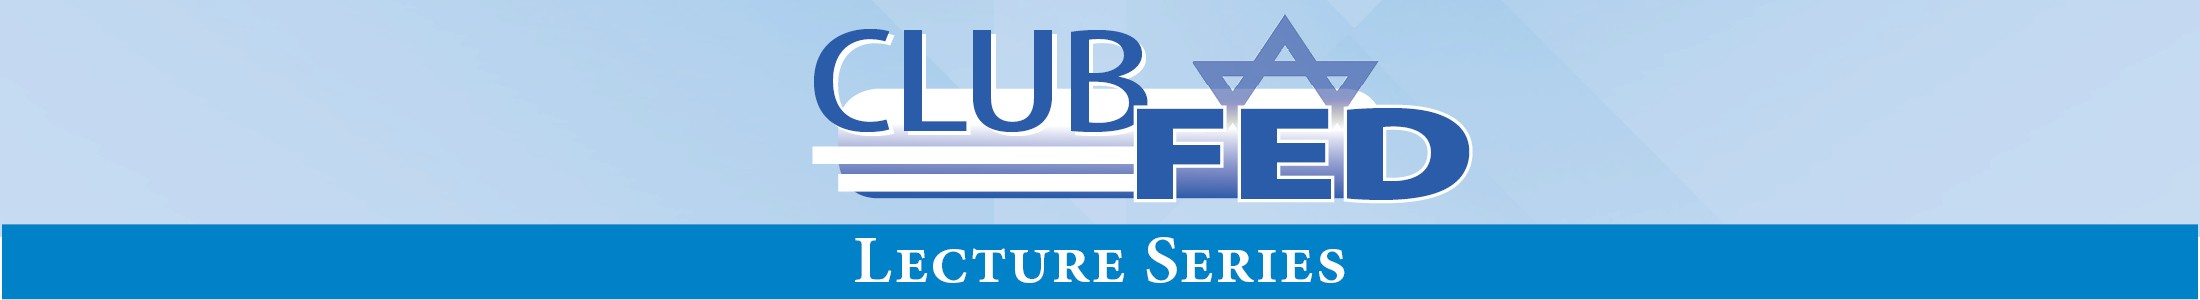 Club Fed Lecture Series HEADER_1.png